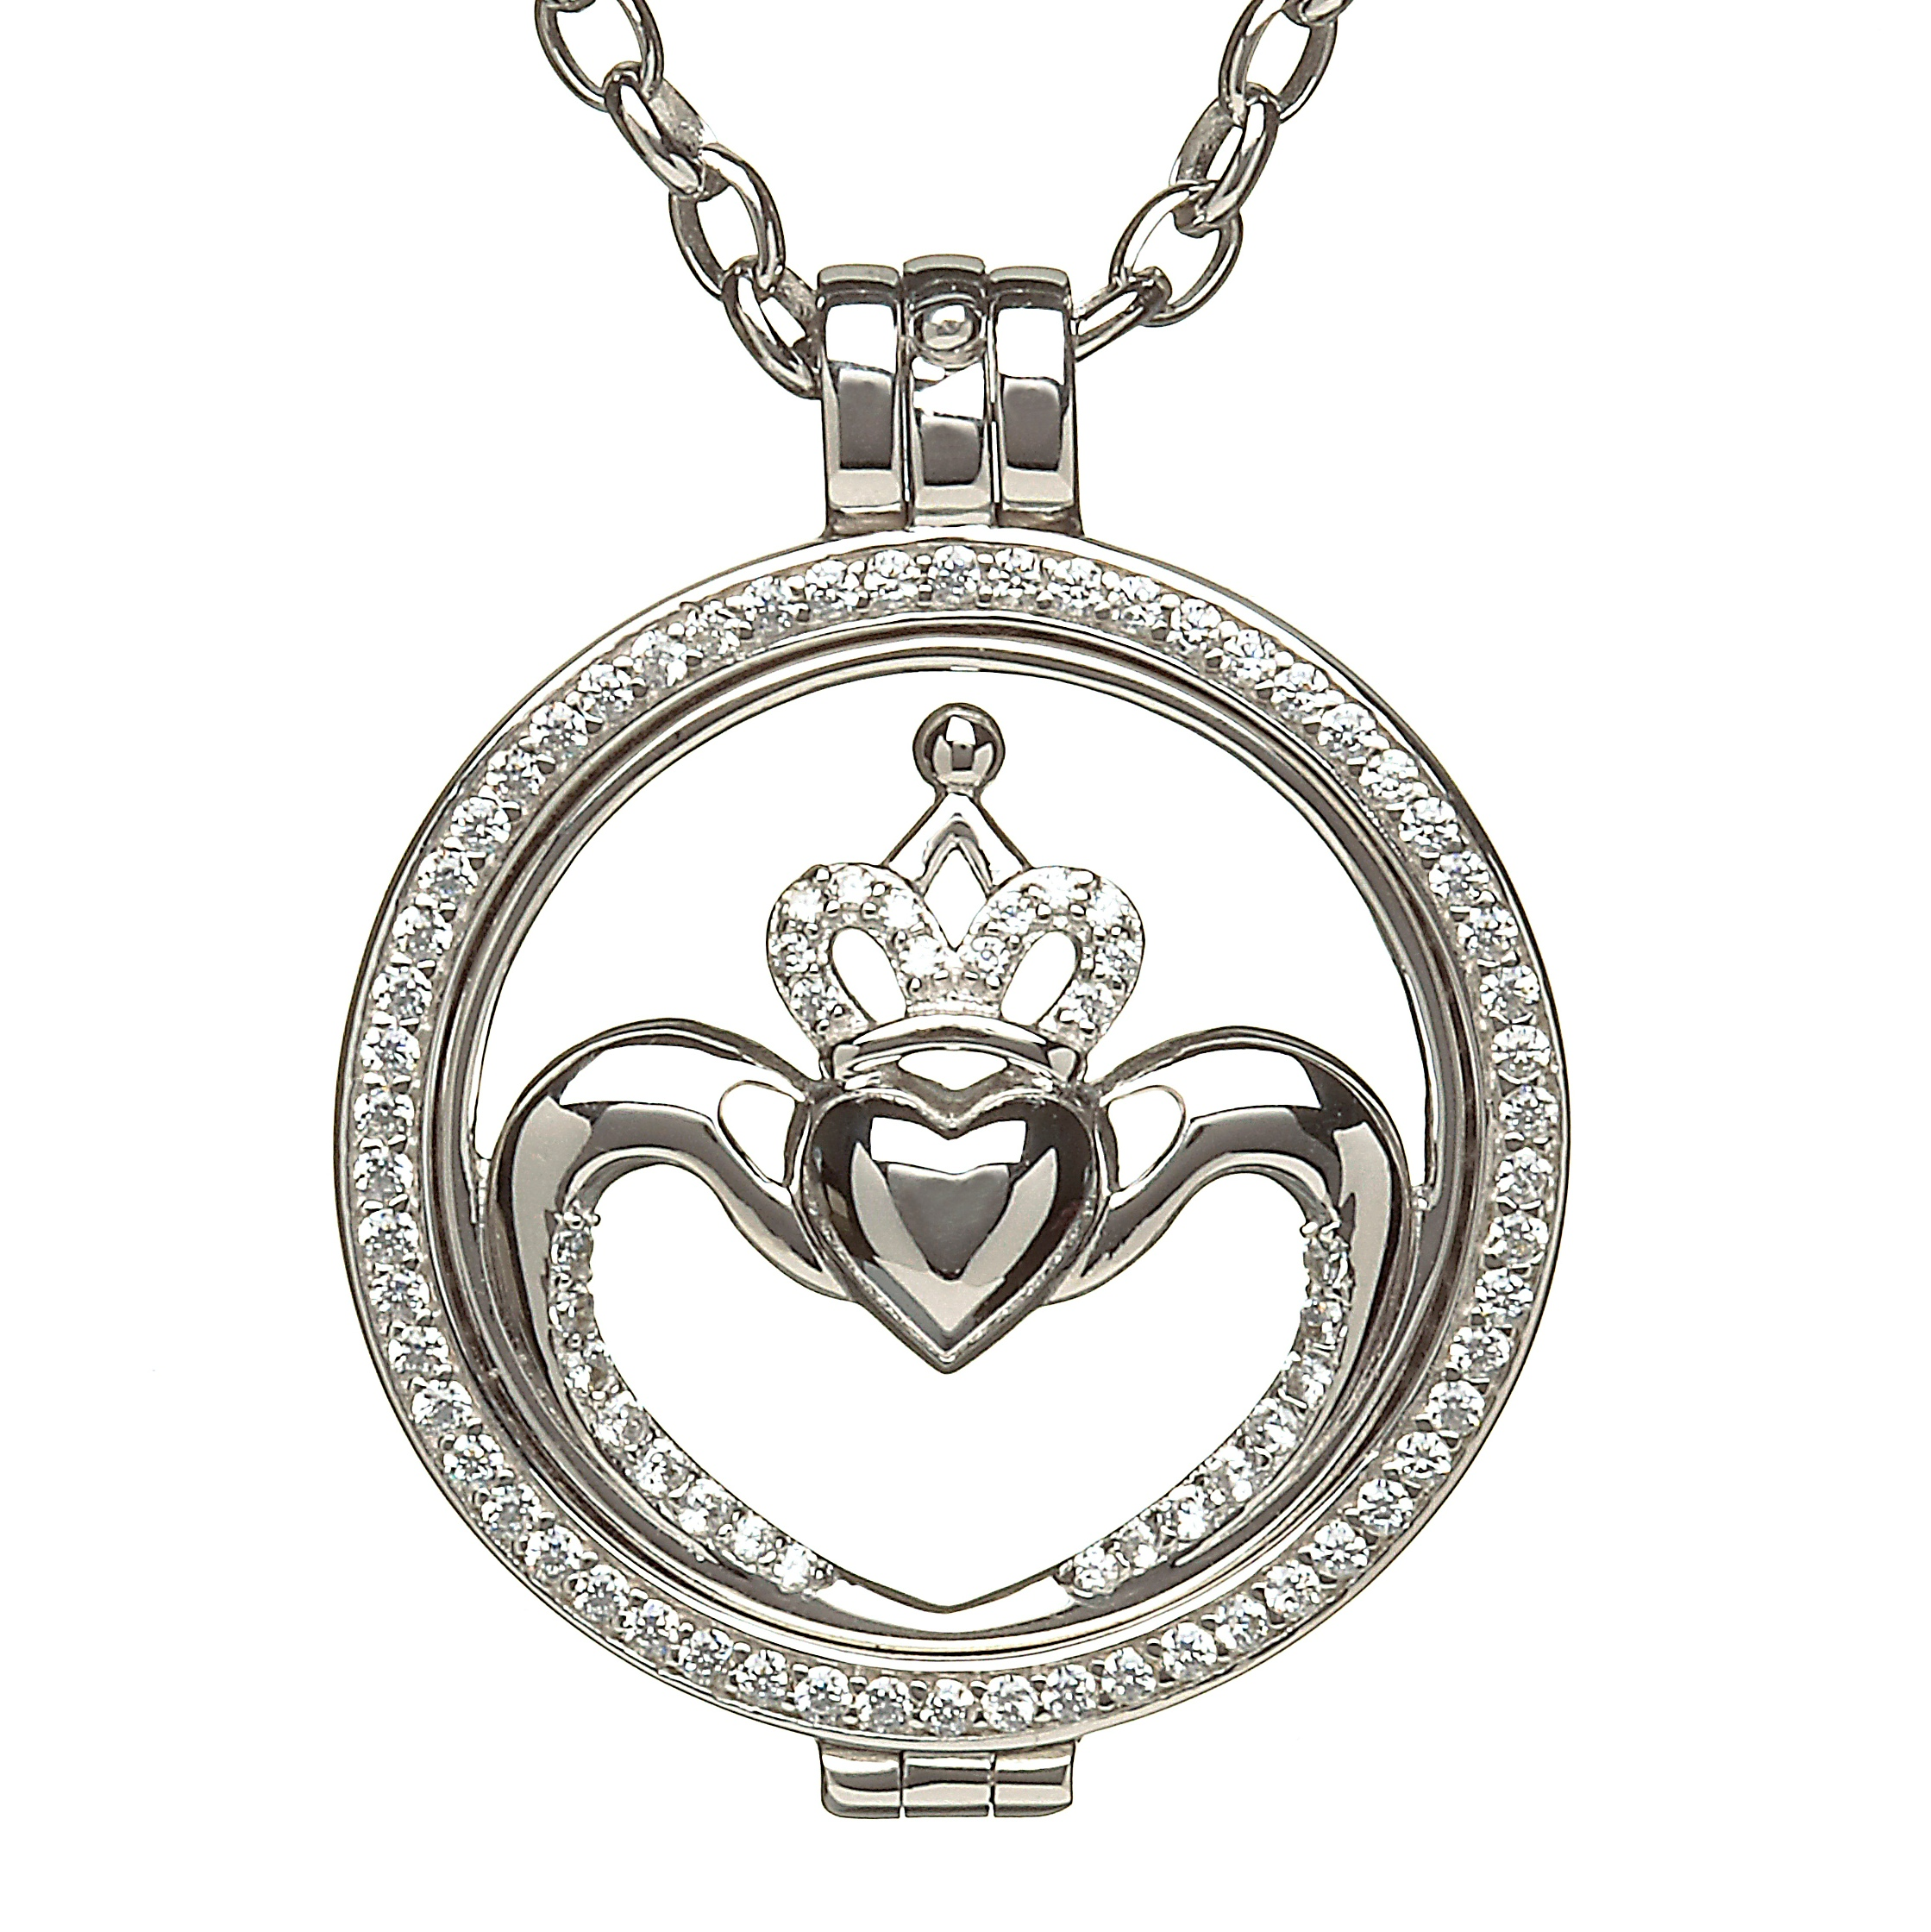 r irish jewelry shop pendants jewellery dublin c durrow pendant celtic mccormack authentic